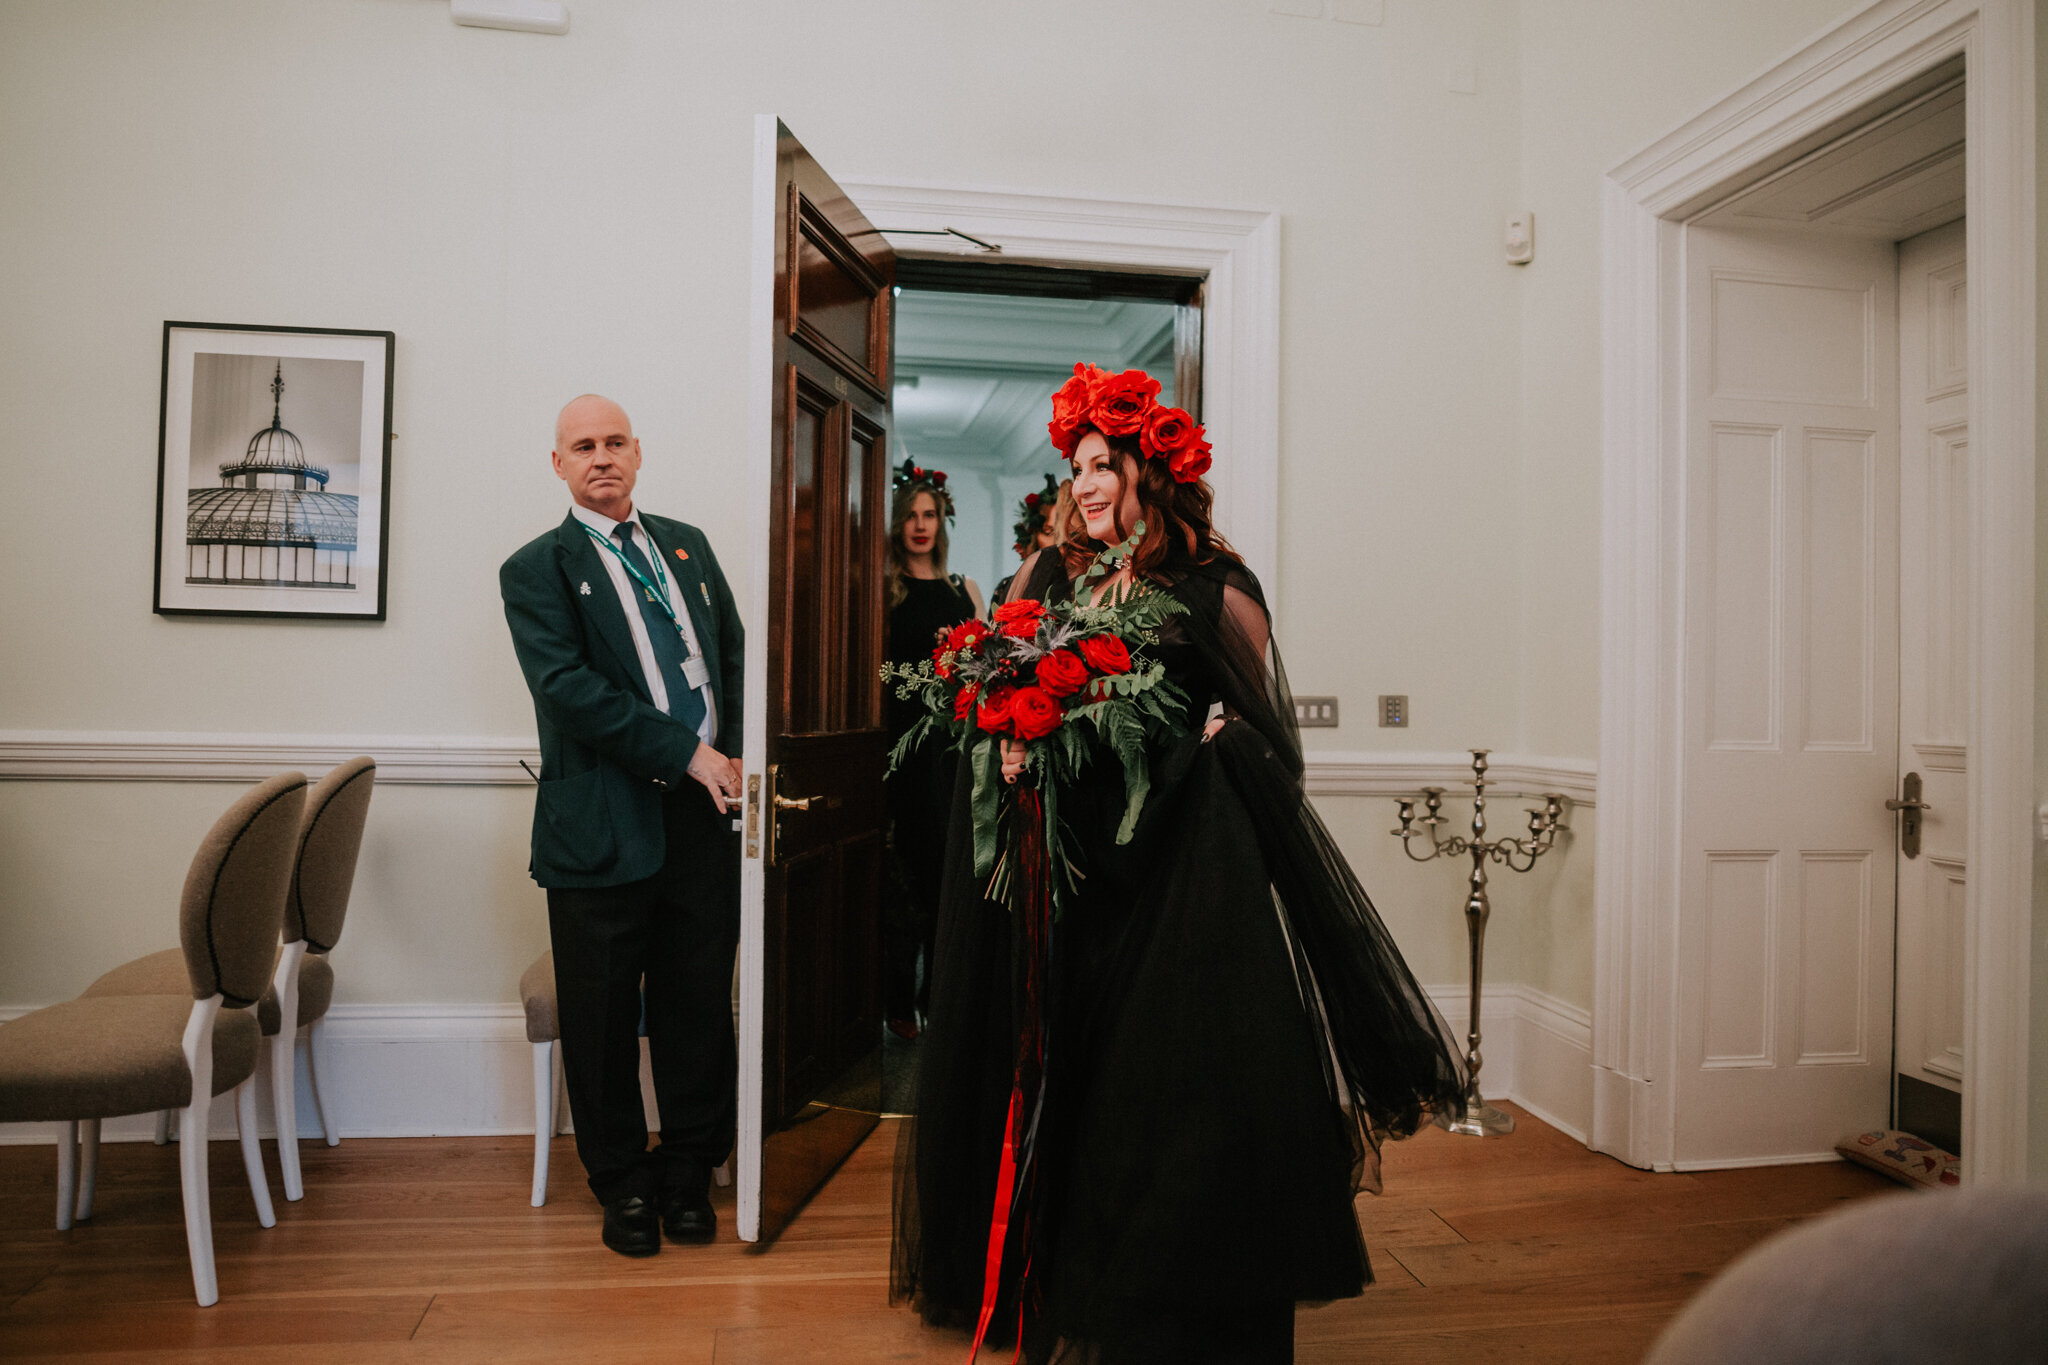 The bride is walking into ceremony room at the 23 Montrose registry office